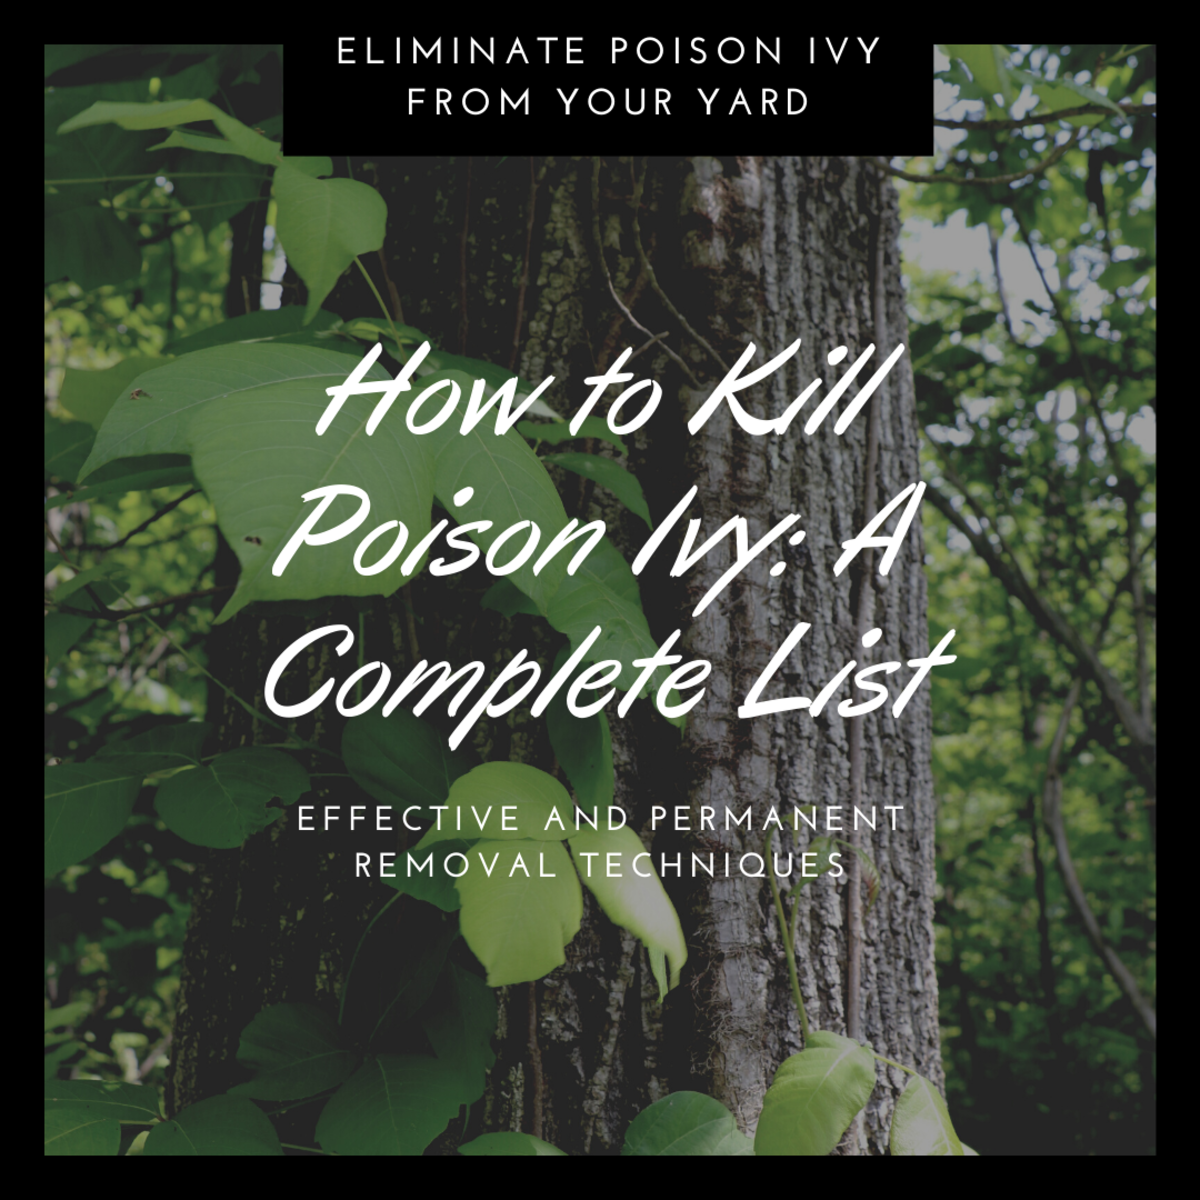 How to Kill Poison Ivy: A Complete List of Methods and Tips